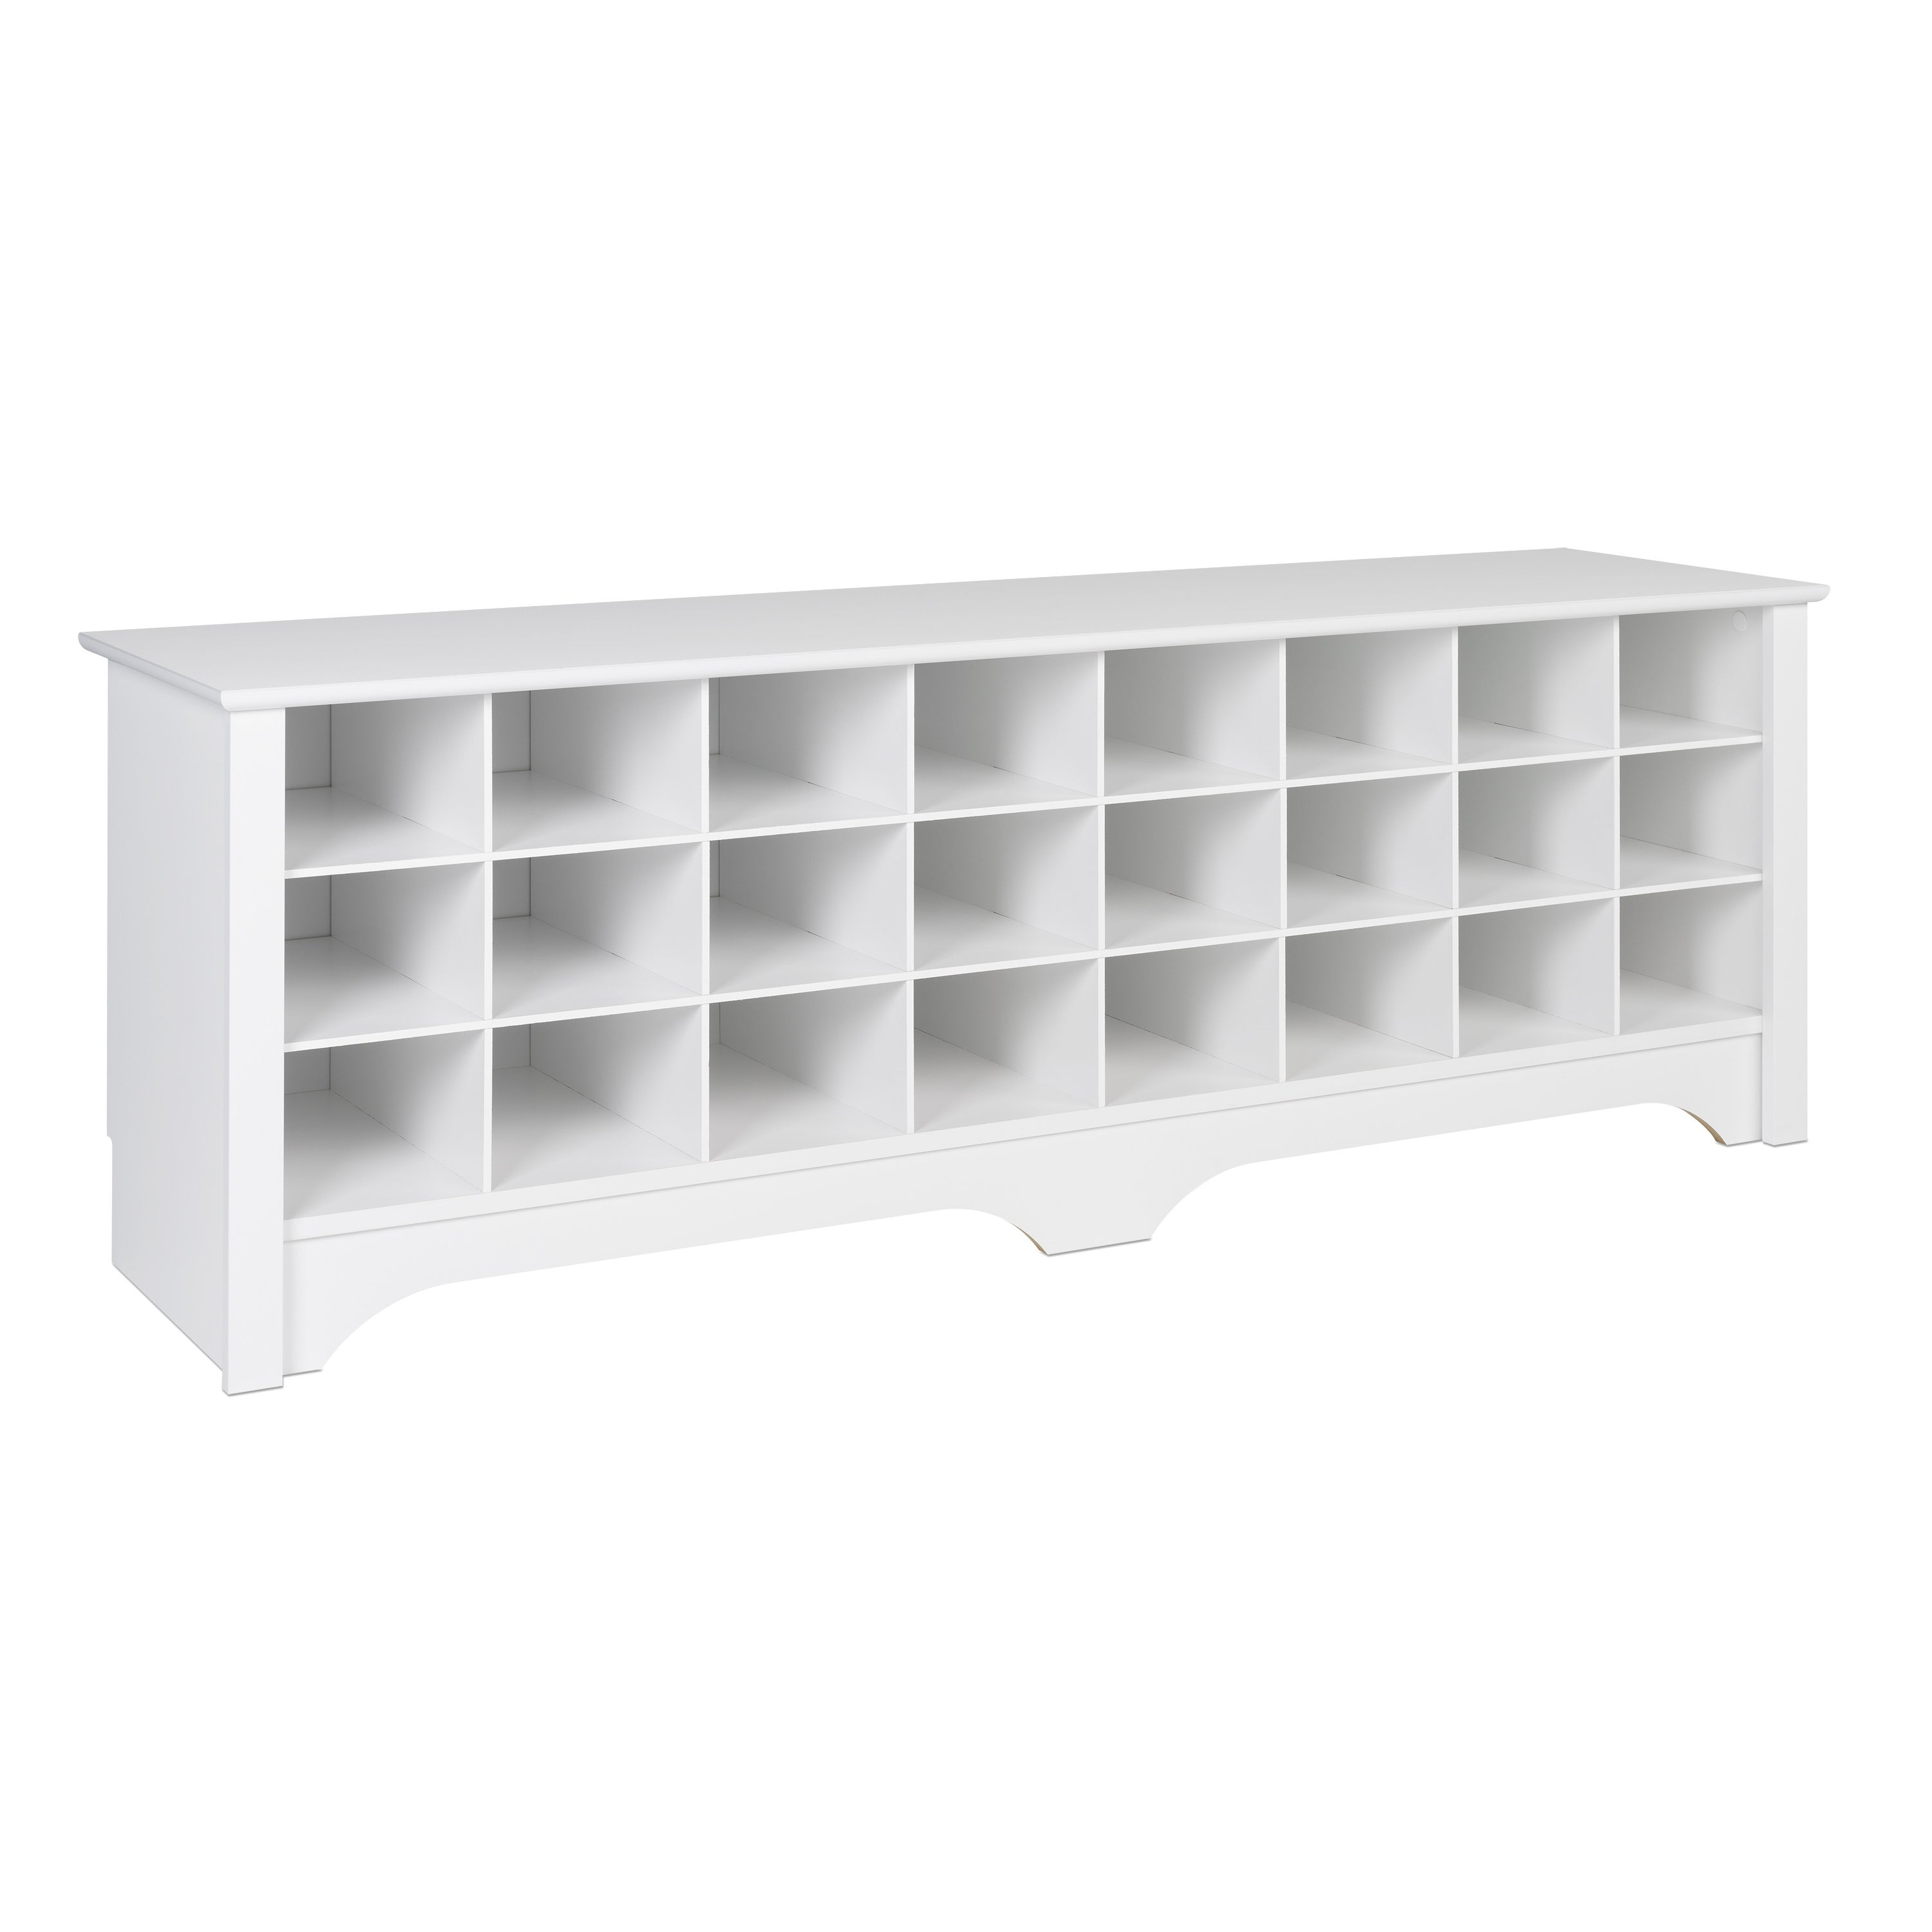 Shop Prepac 24 Pair Shoe Storage Cubby Bench, Multiple Finishes   Free  Shipping Today   Overstock.com   20926281